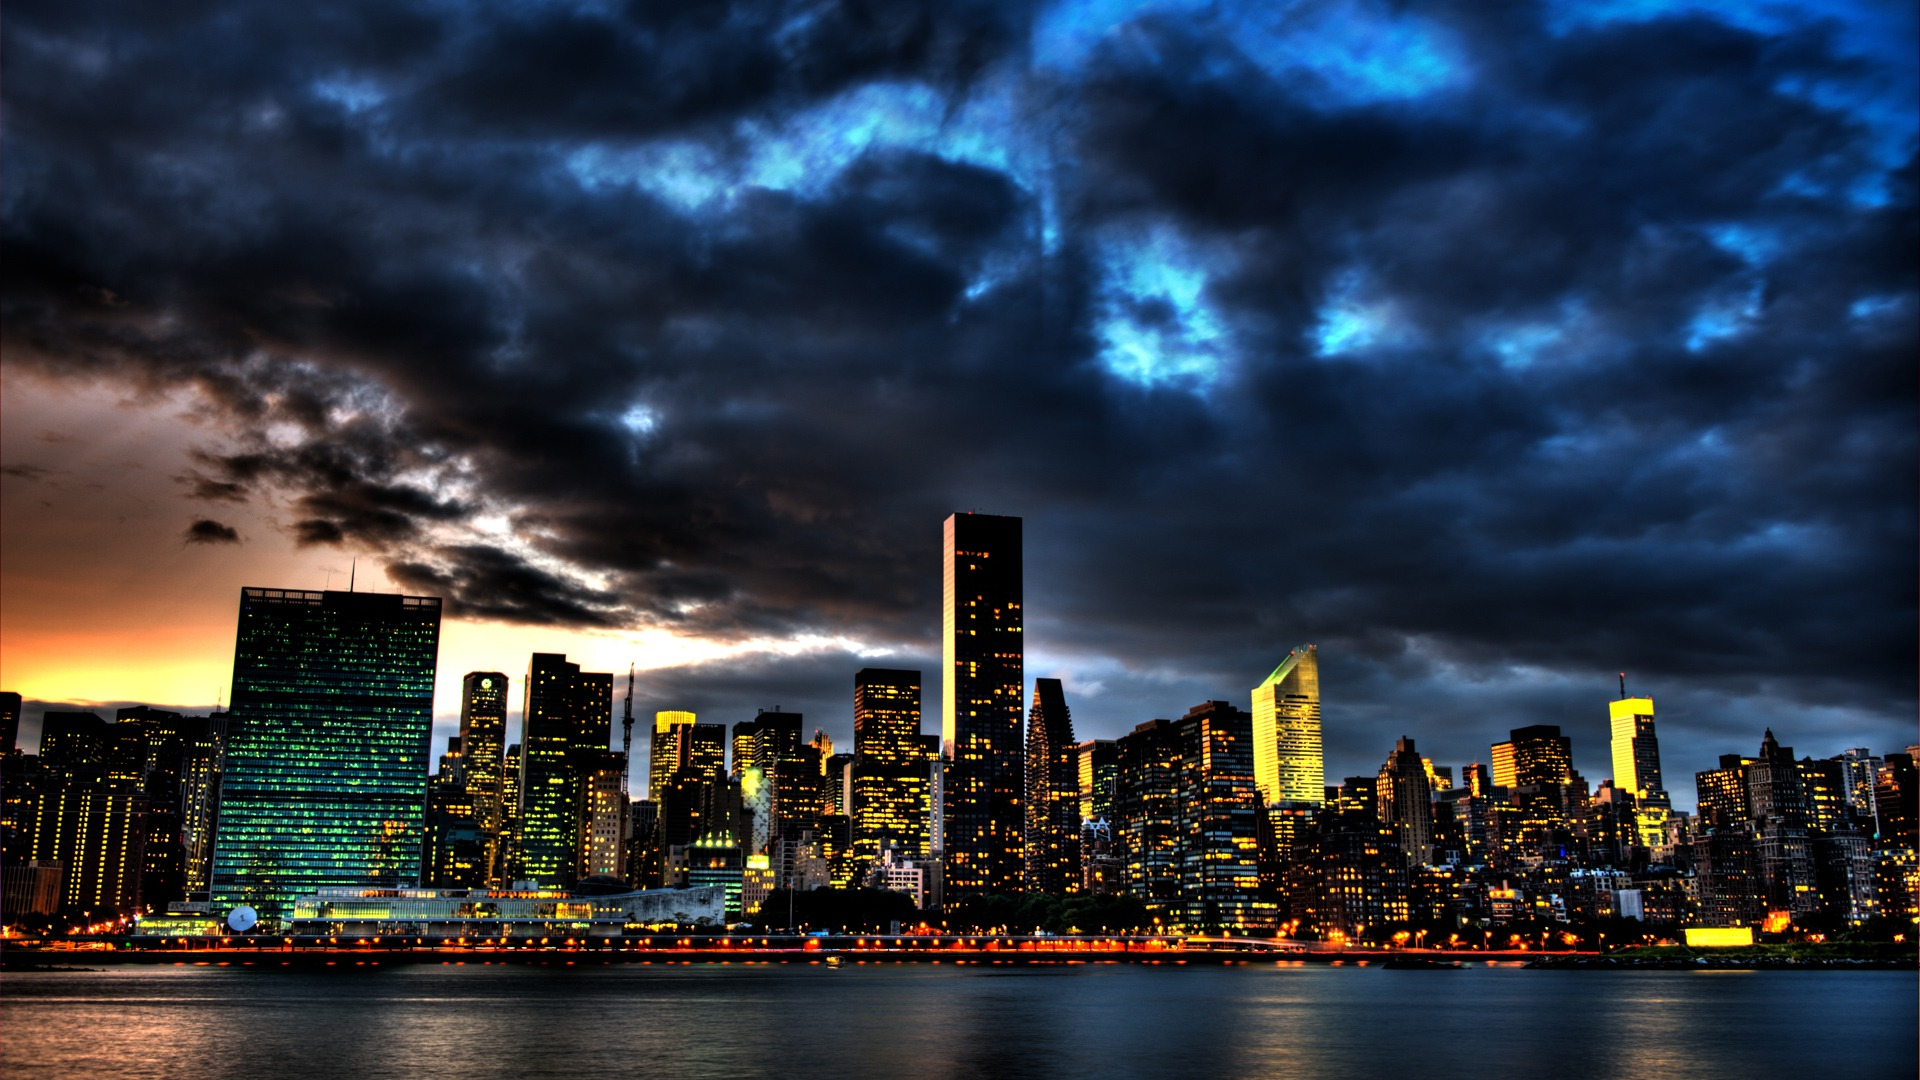 new york city skyline 1080p wallpaper city hd wallpapers wide screen wallpaper 1080p 2k 4k. Black Bedroom Furniture Sets. Home Design Ideas